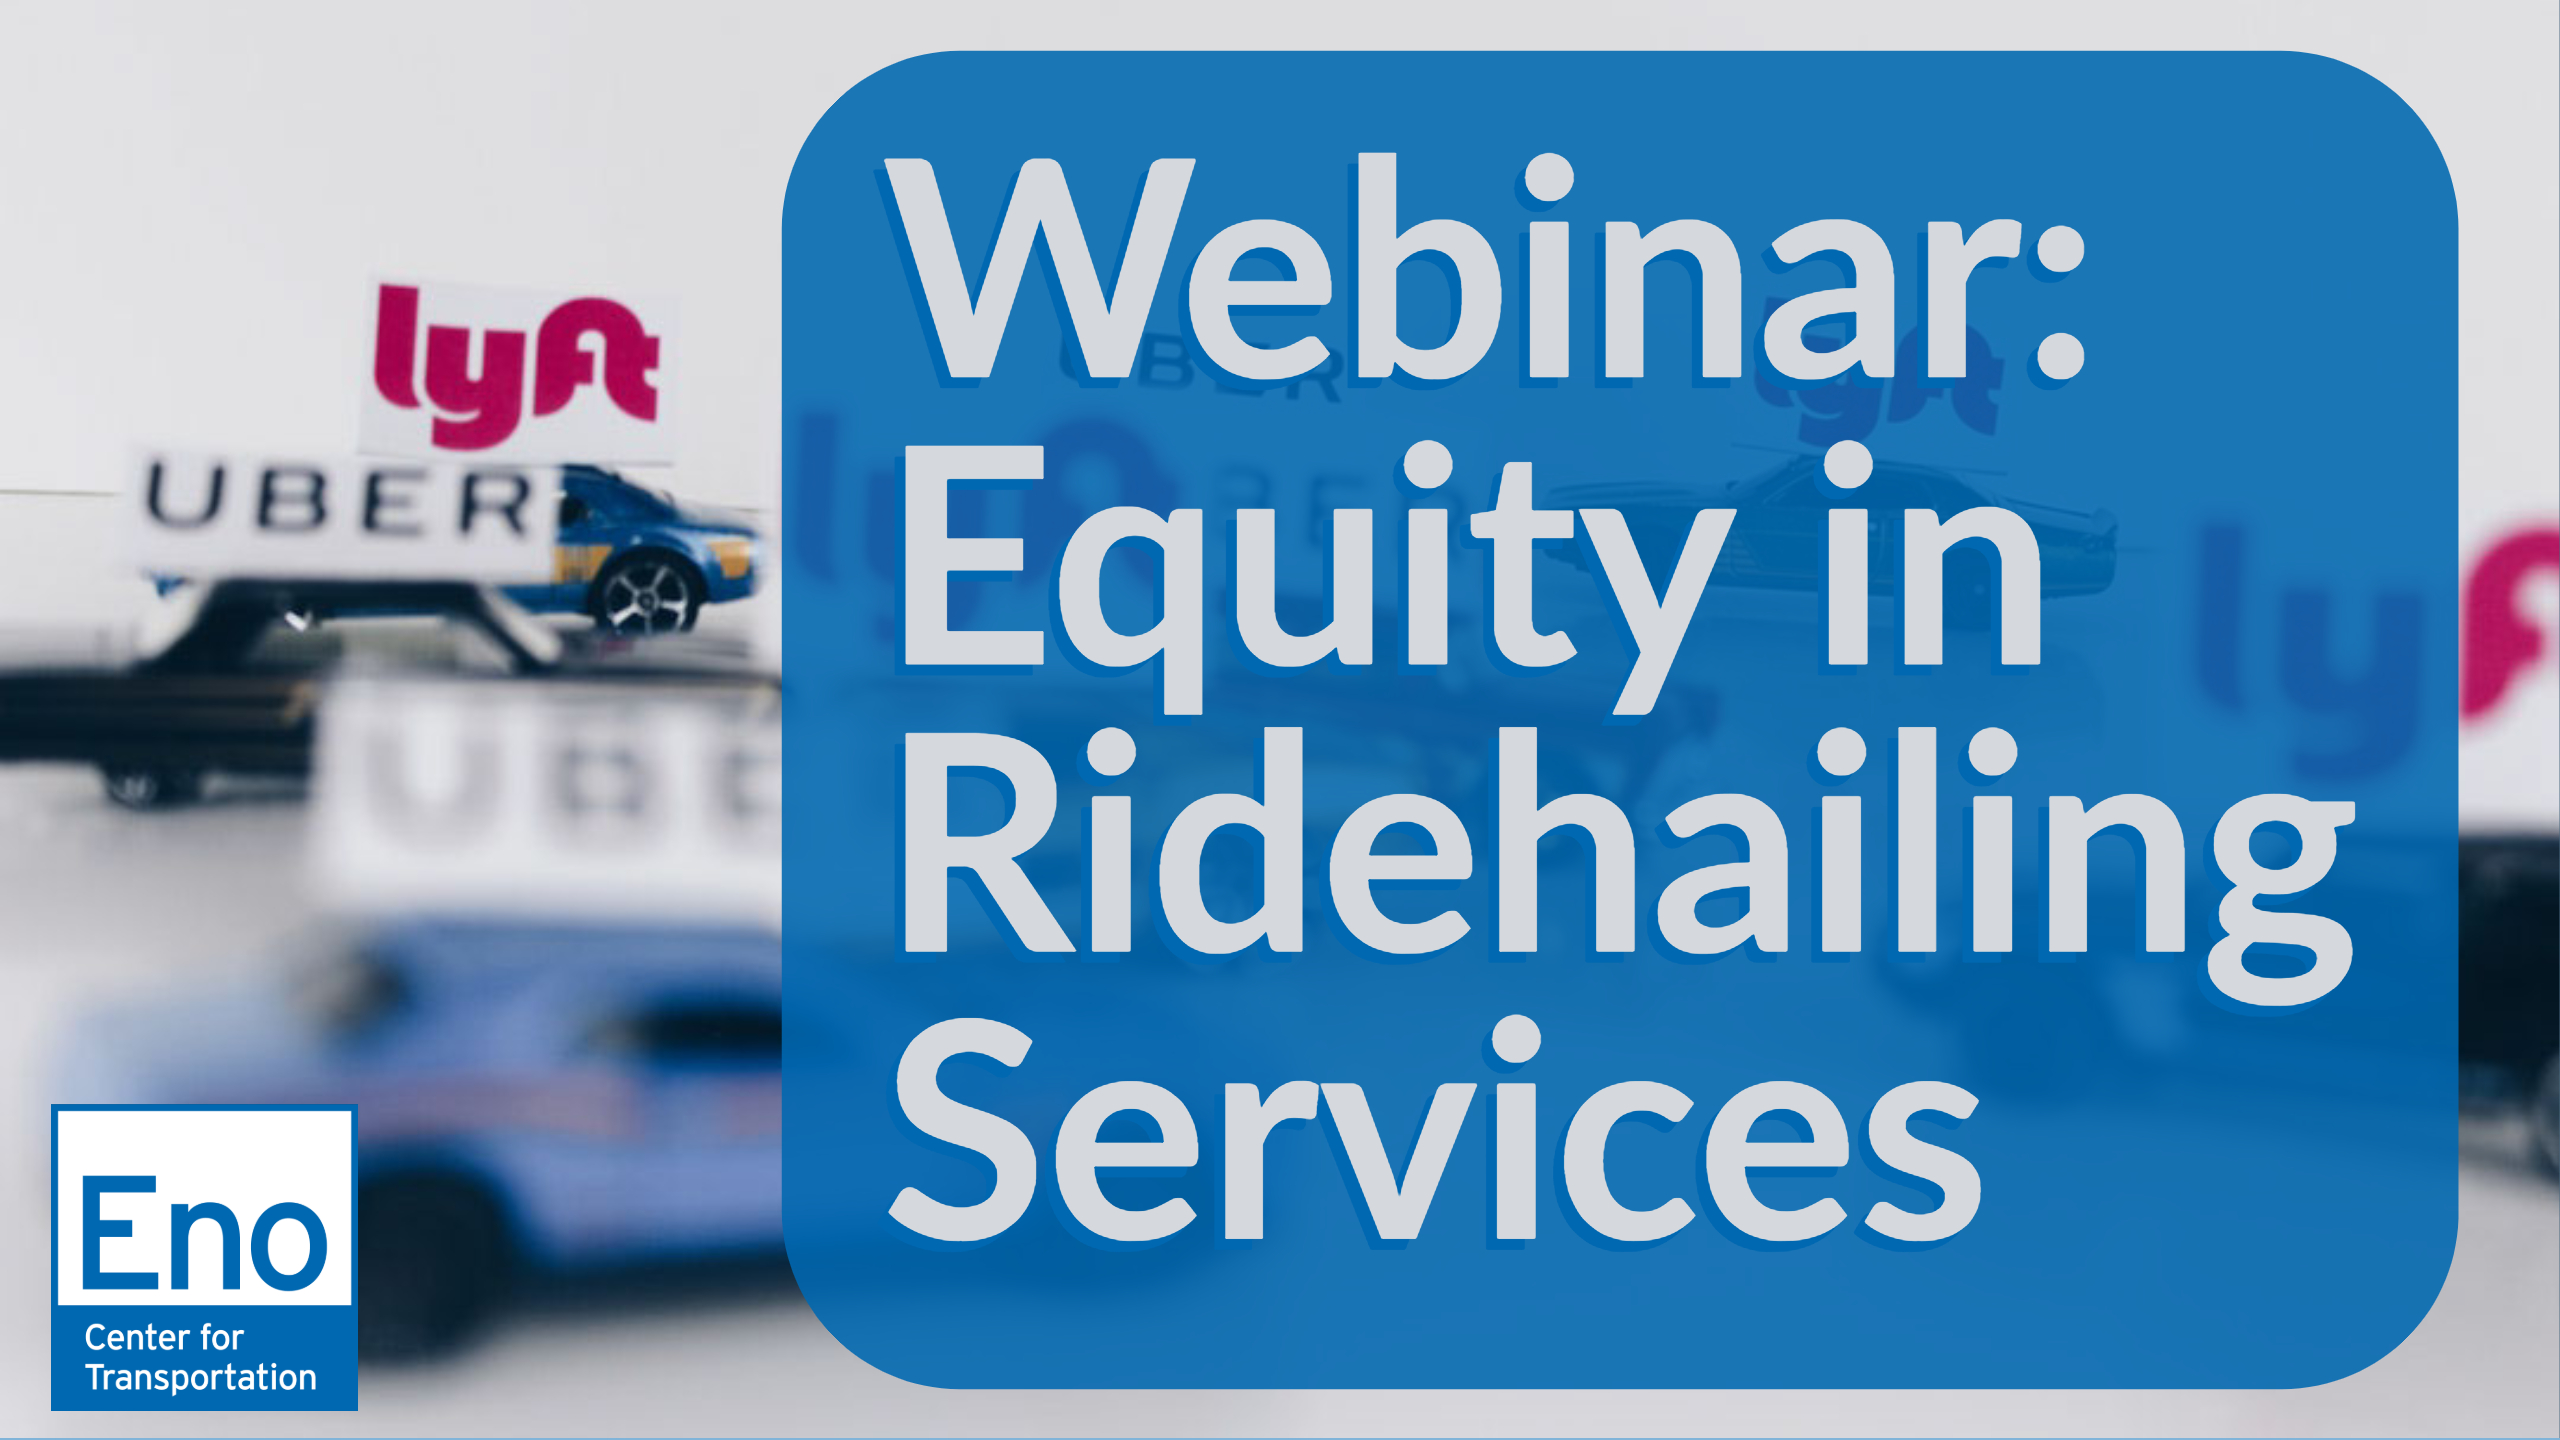 Webinar: Equity in Ridehailing Services